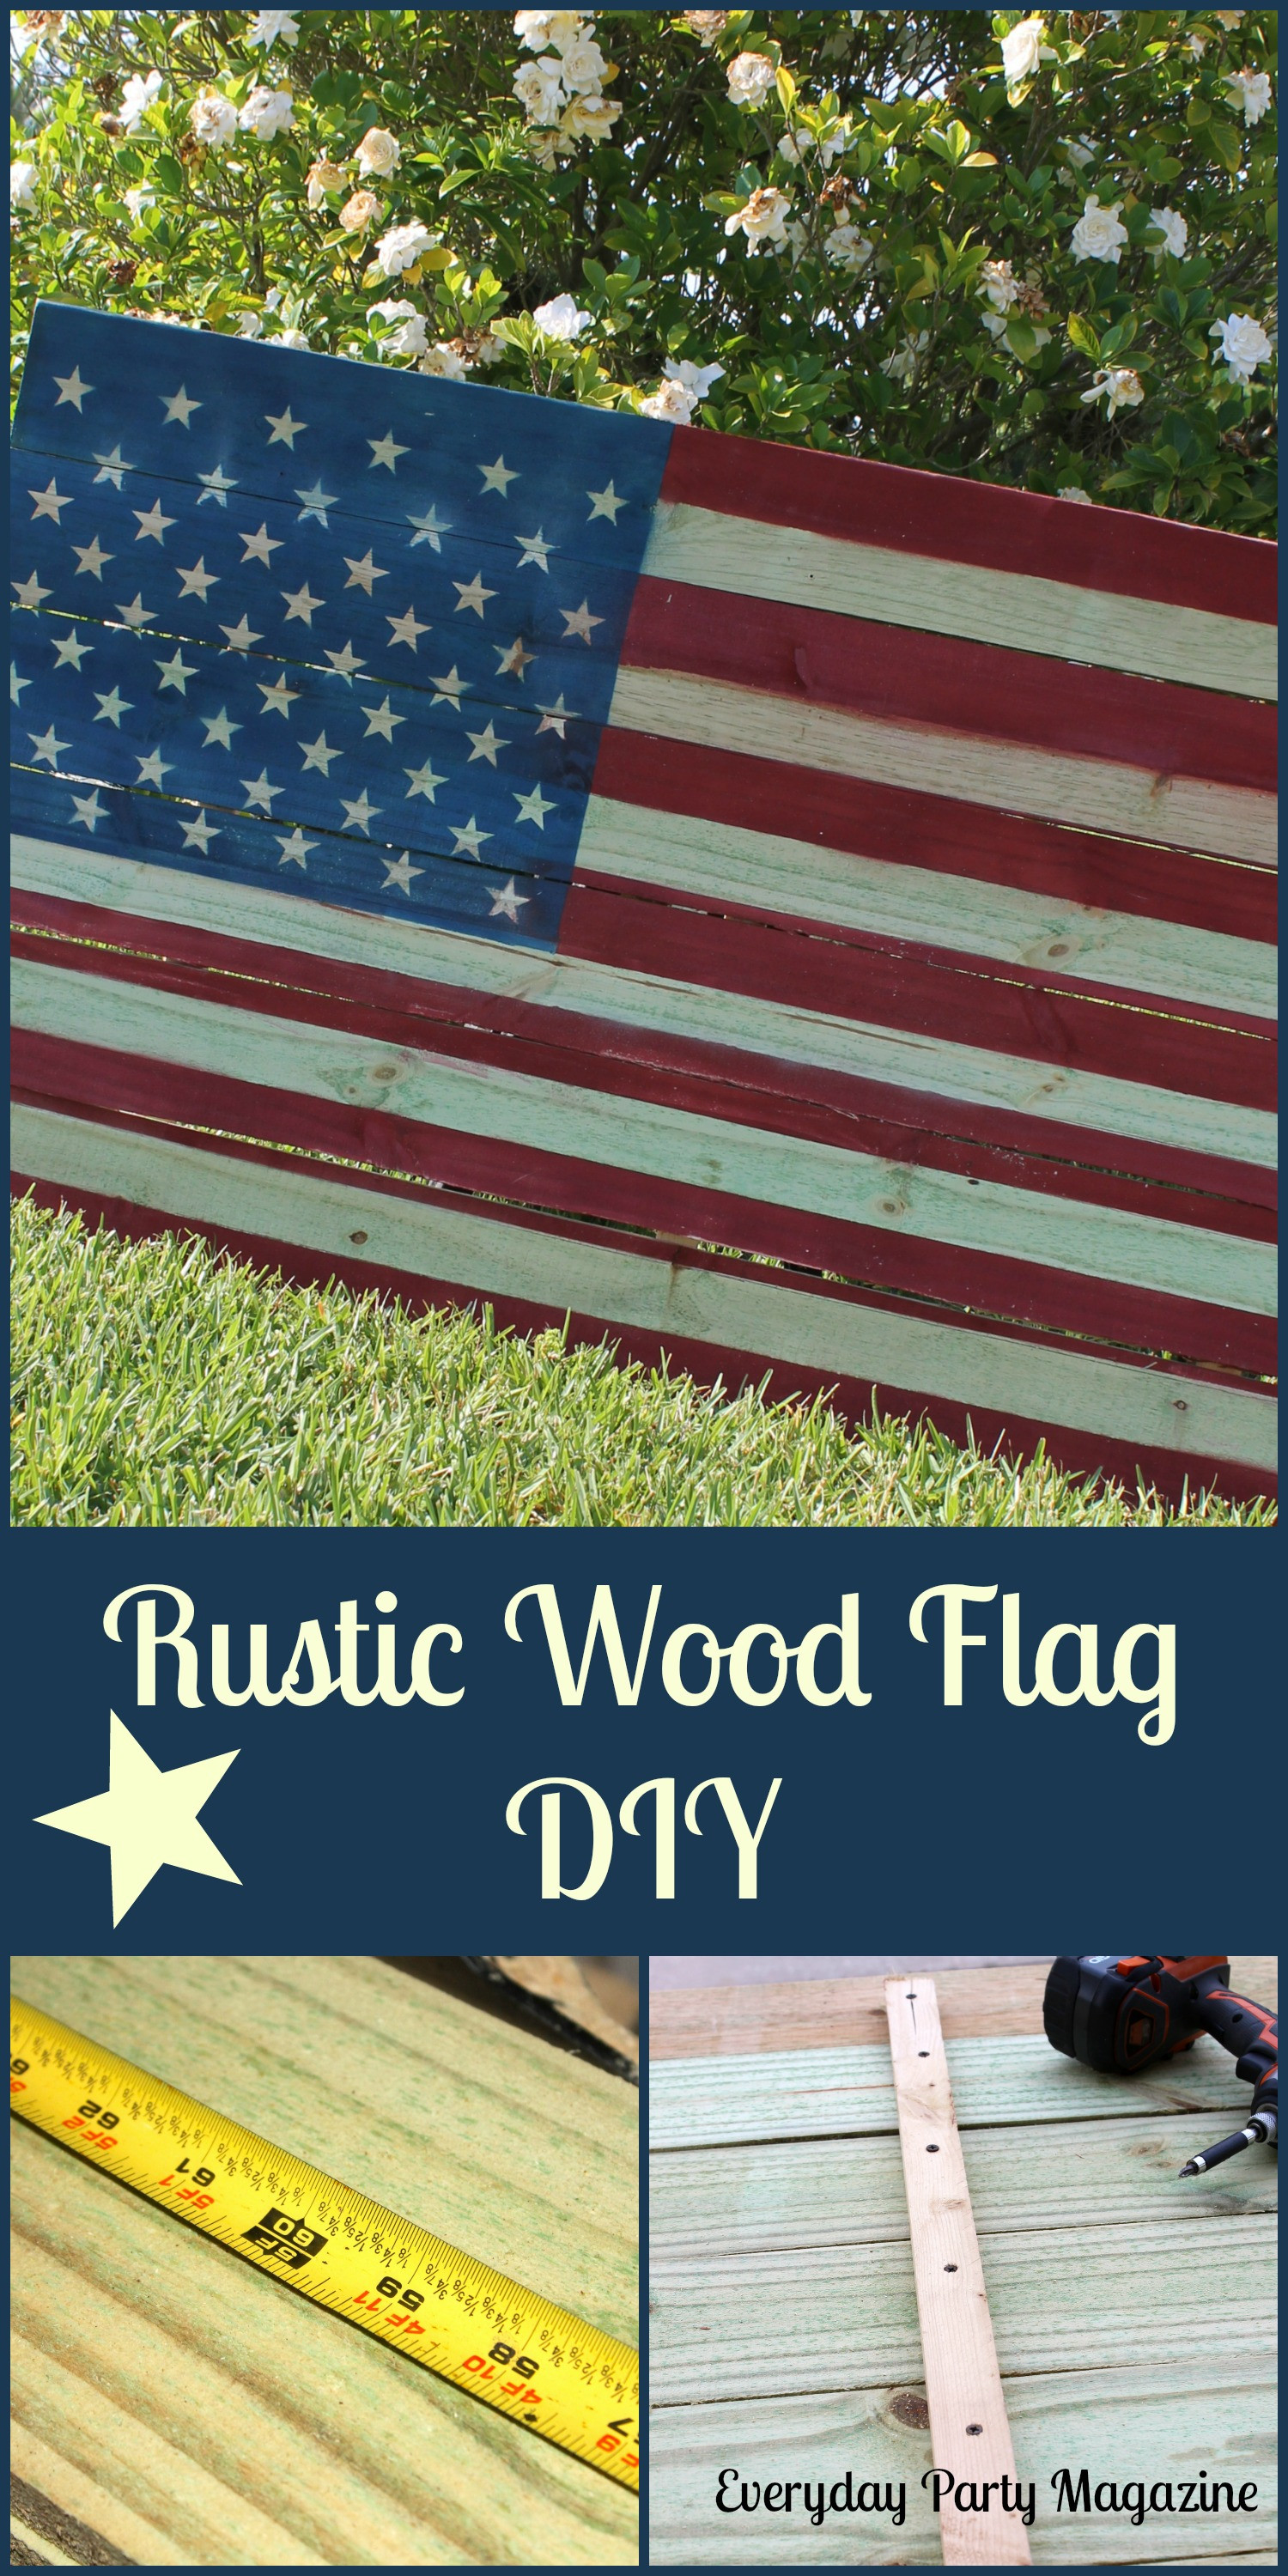 Best ideas about DIY Wooden Flag . Save or Pin Rustic Wood Flag DIY Everyday Party Magazine Now.